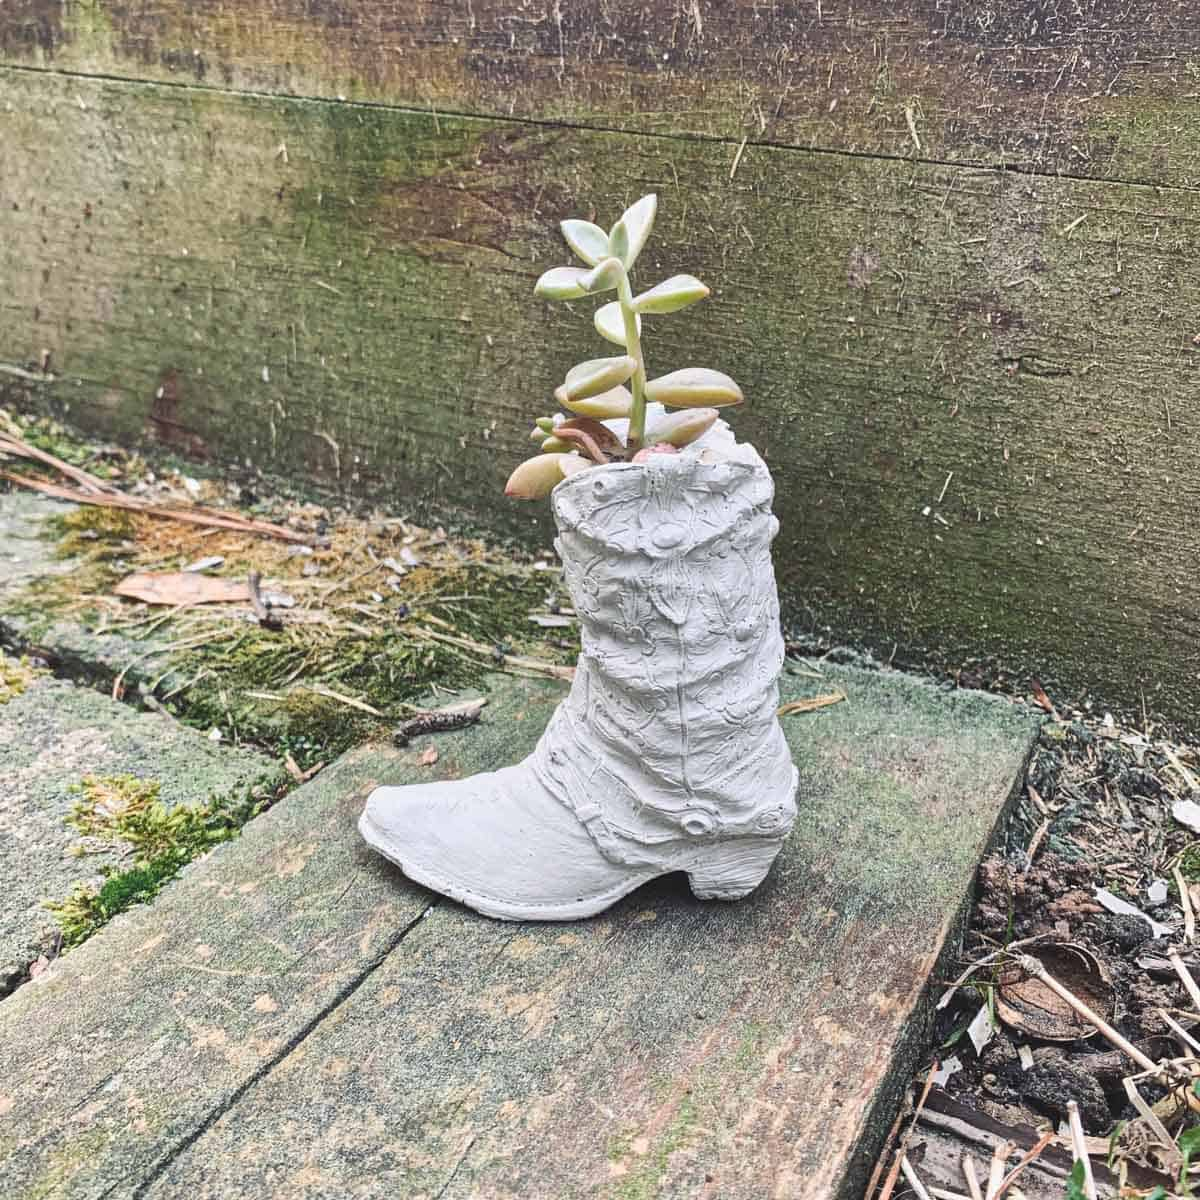 DIY mini cowboy boot planter made from a DIY latex mold. Succulent planted inside.